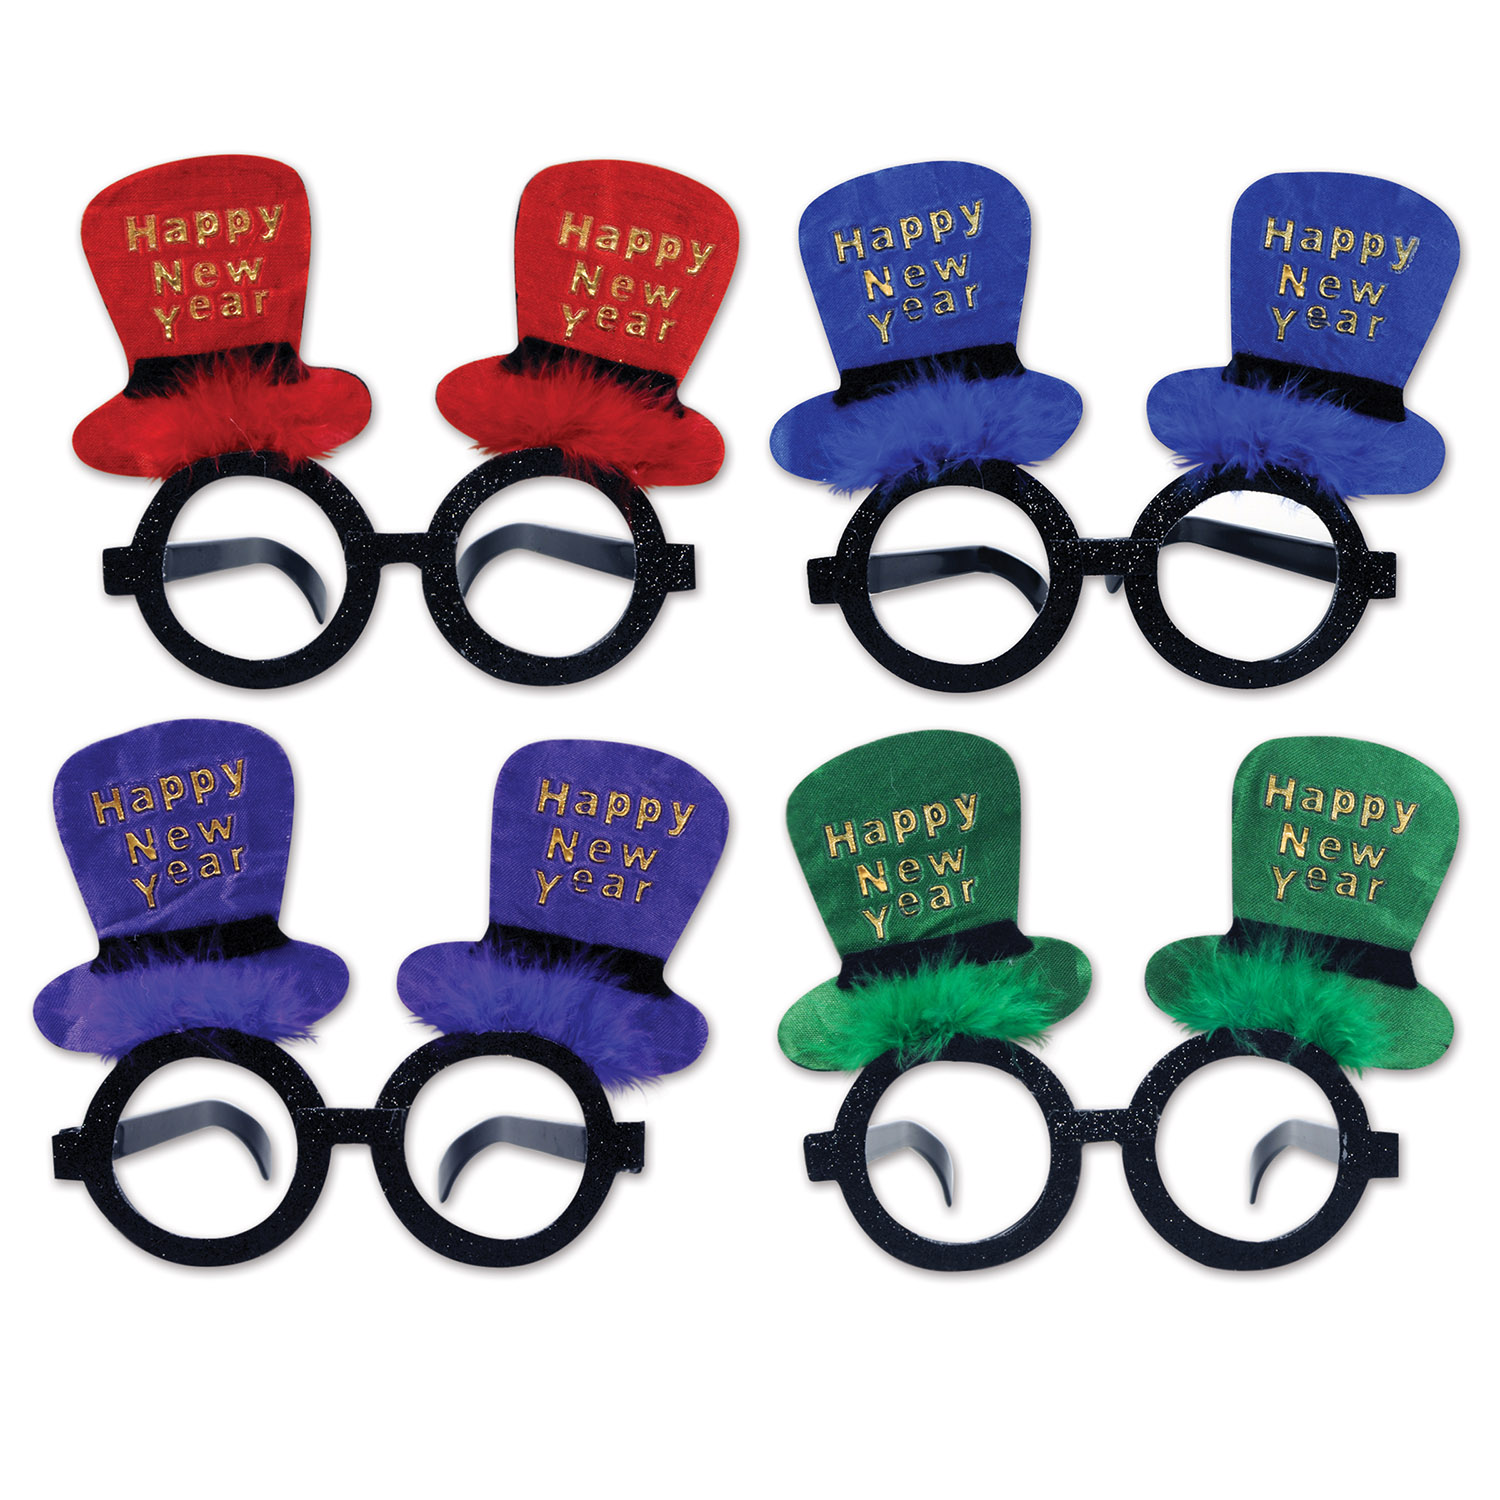 Glittered New Year Top Hat Glasses asstd colors